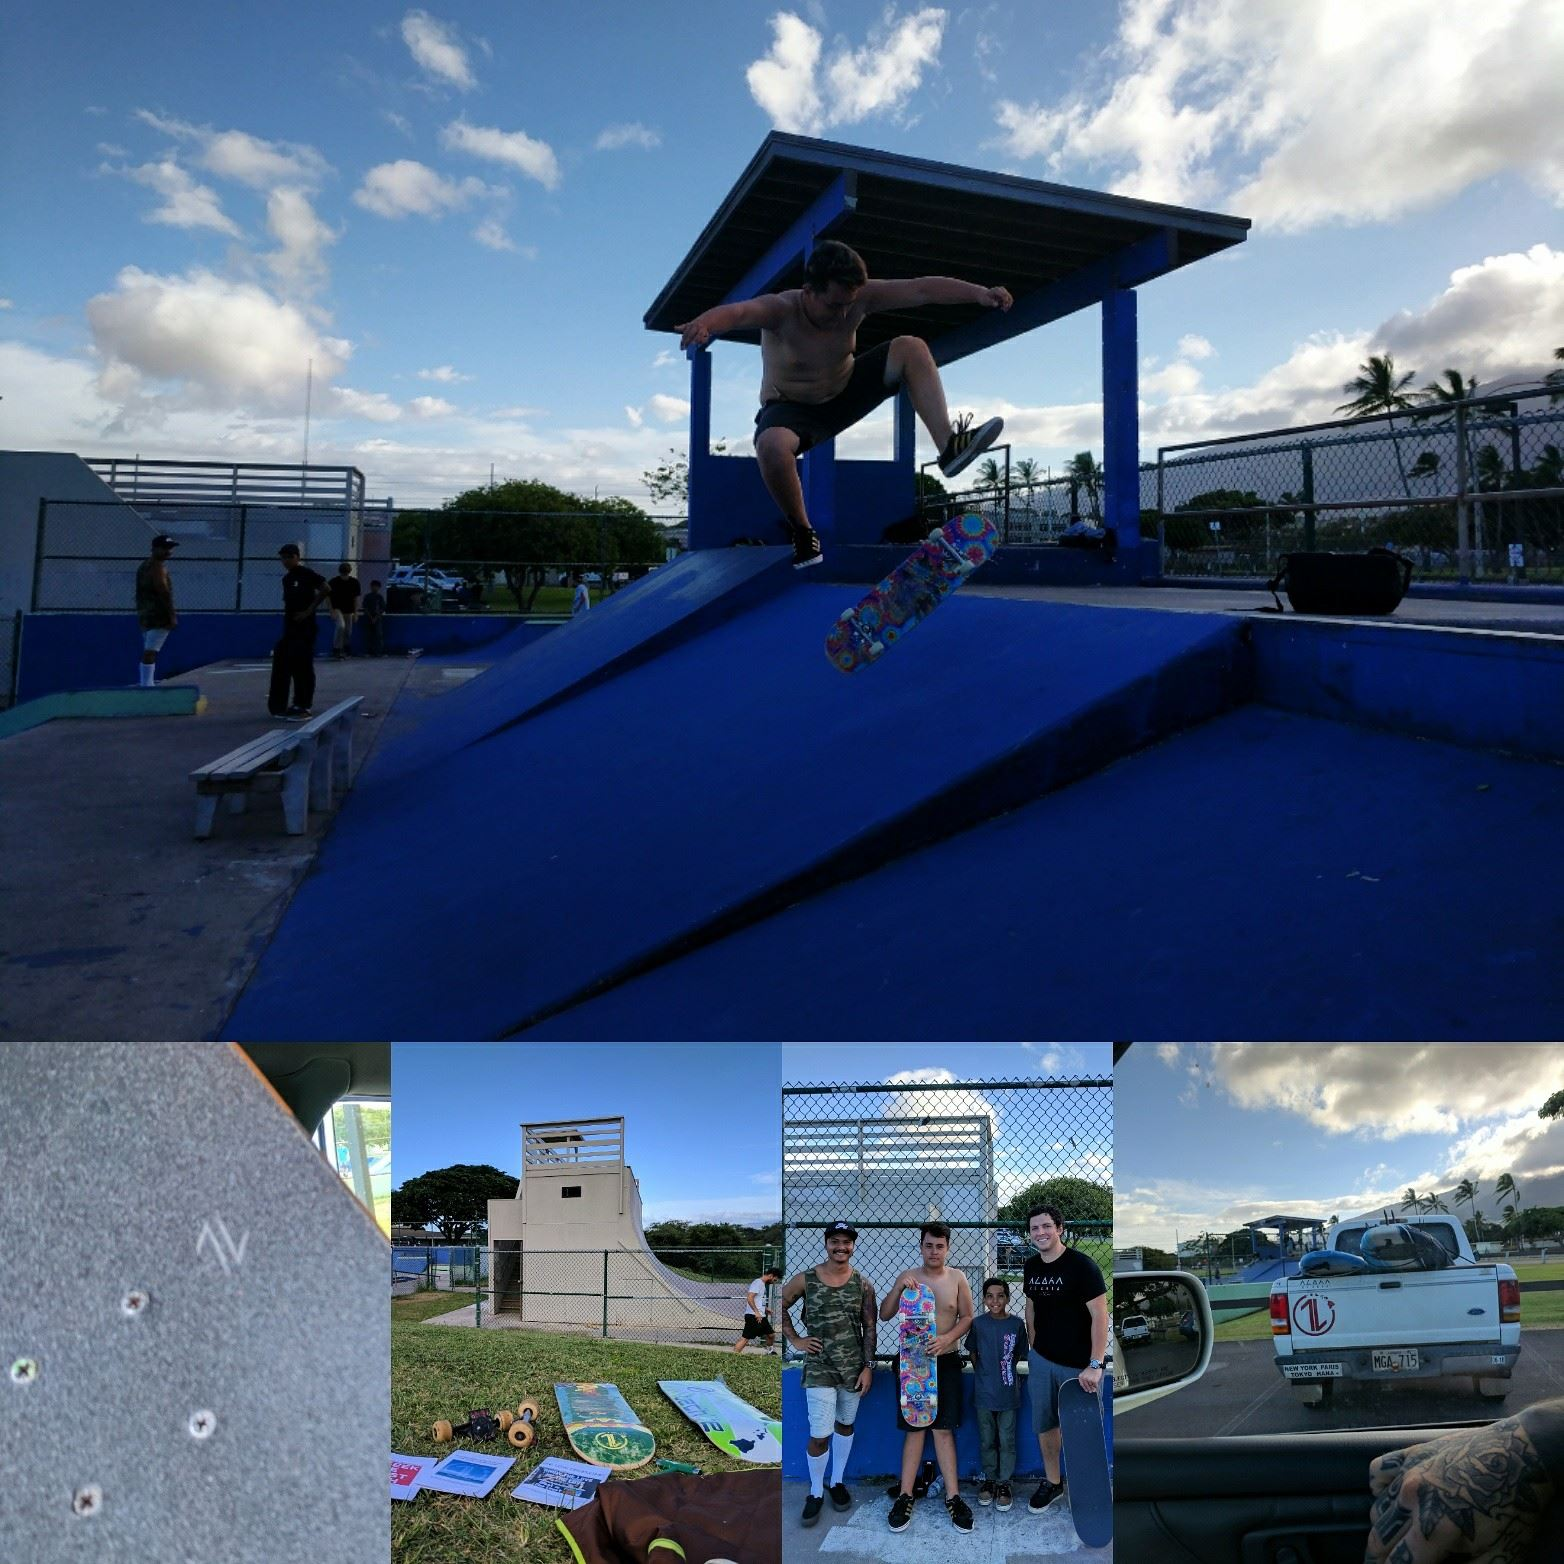 Stoked to be back on Maui & back at Keopuolani Skatepark last Wednesday. So fun to skate & hang with Sam P., Paul, & some skaters who have been part of 1L events in the past.